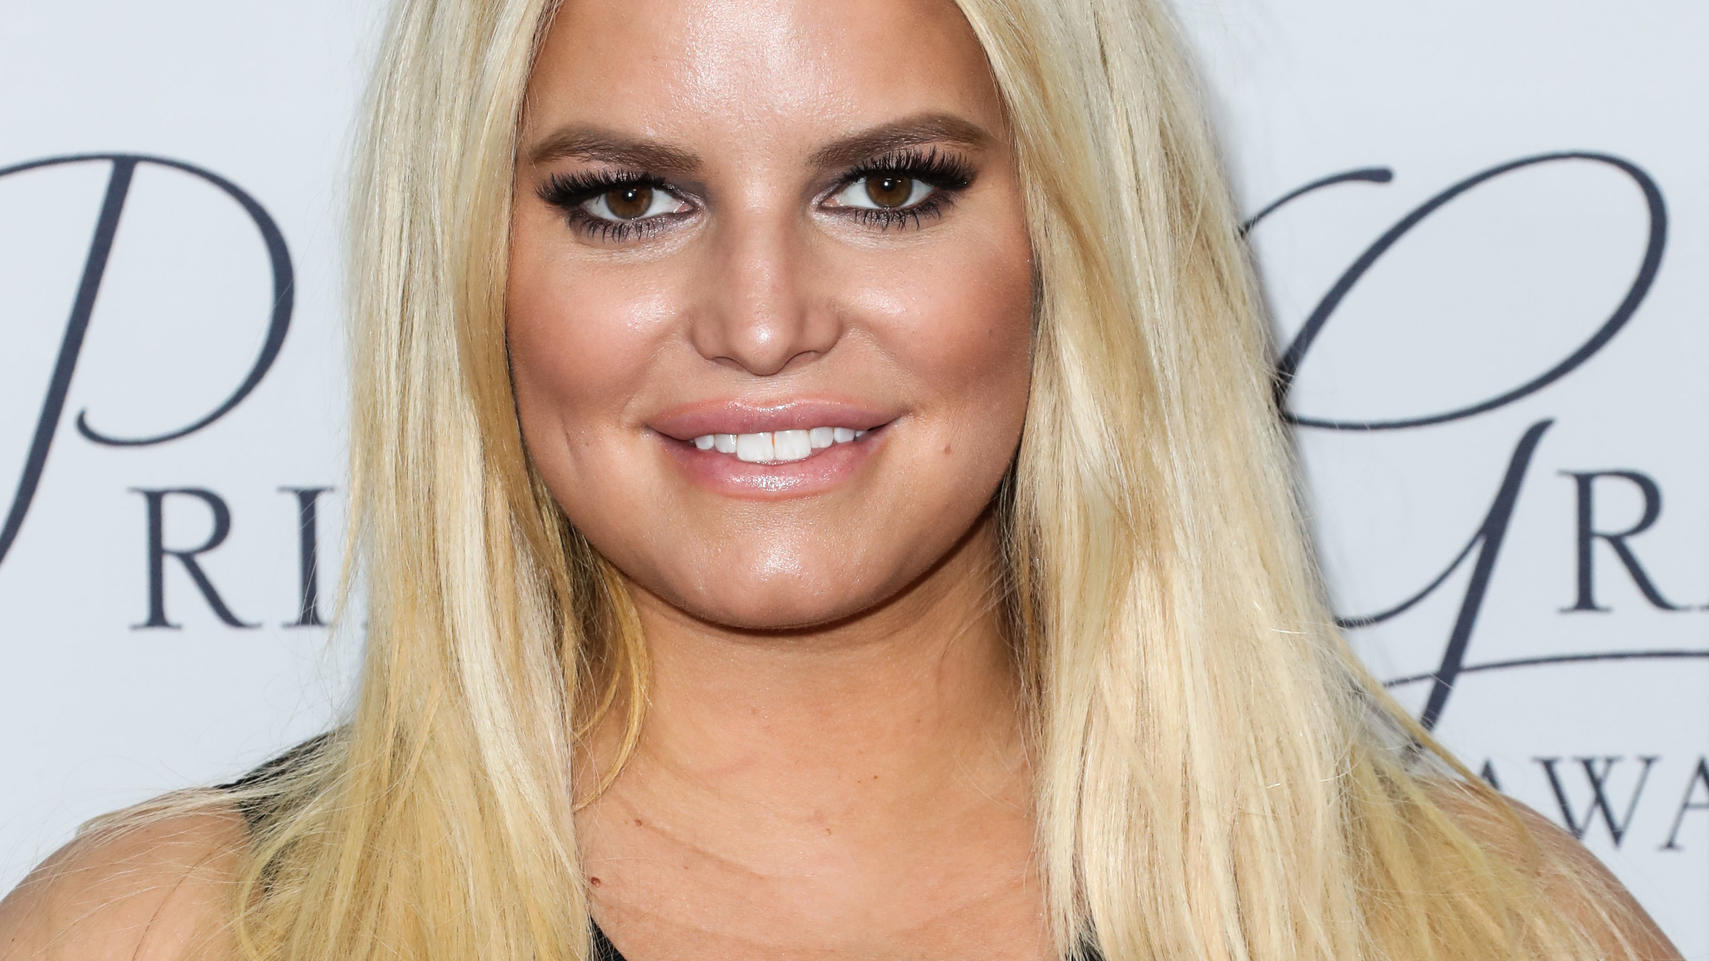 HOLLYWOOD, LOS ANGELES, CA, USA - OCTOBER 24: Singer/actress Jessica Simpson arrives at the 2017 Princess Grace Awards Gala Kickoff Event held at Paramount Studios on October 24, 2017 in Hollywood, Los Angeles, California, United States. (Photo by Xa